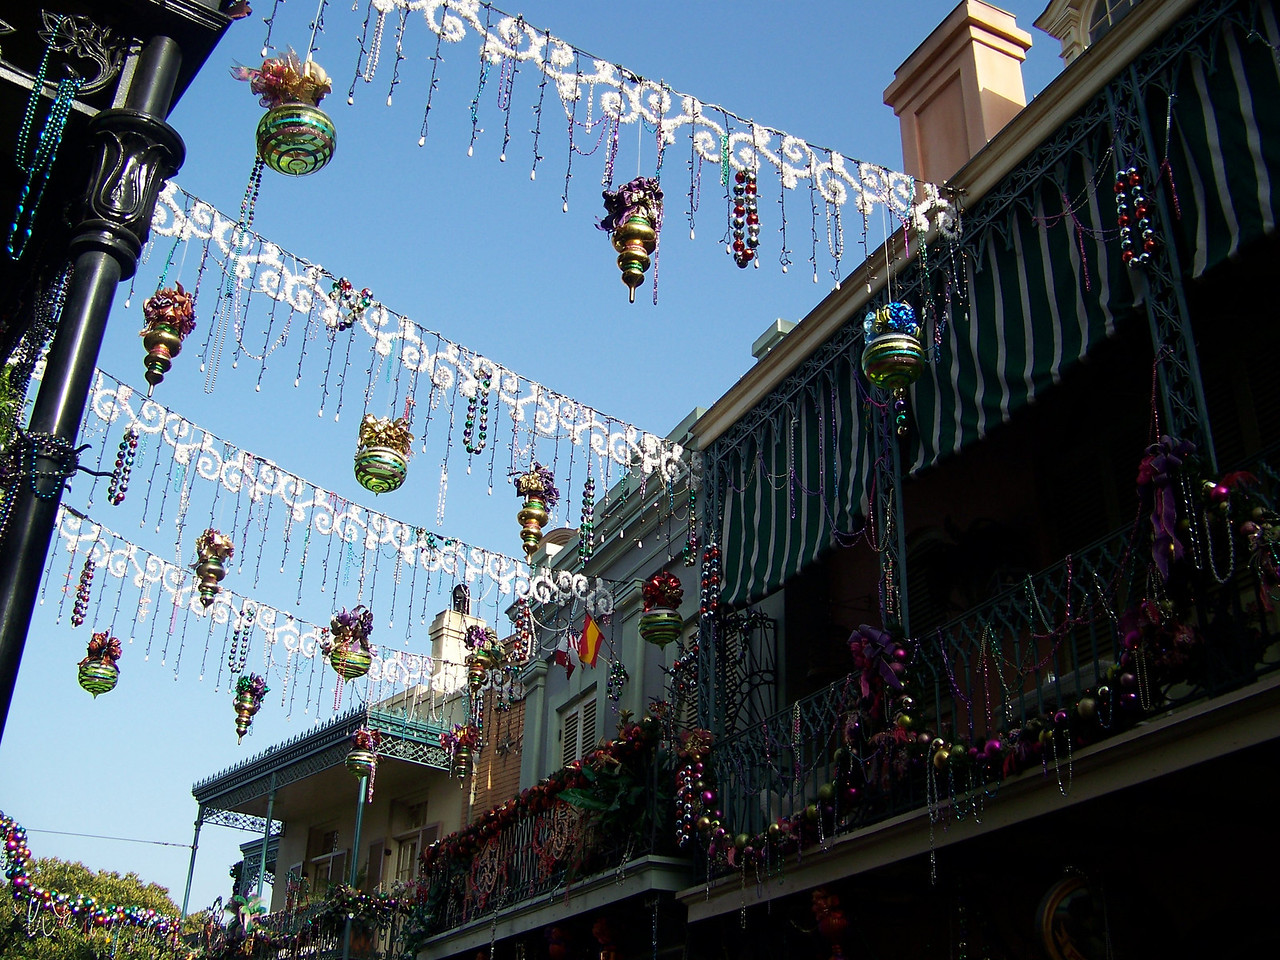 Disneyland - New Orleans Square